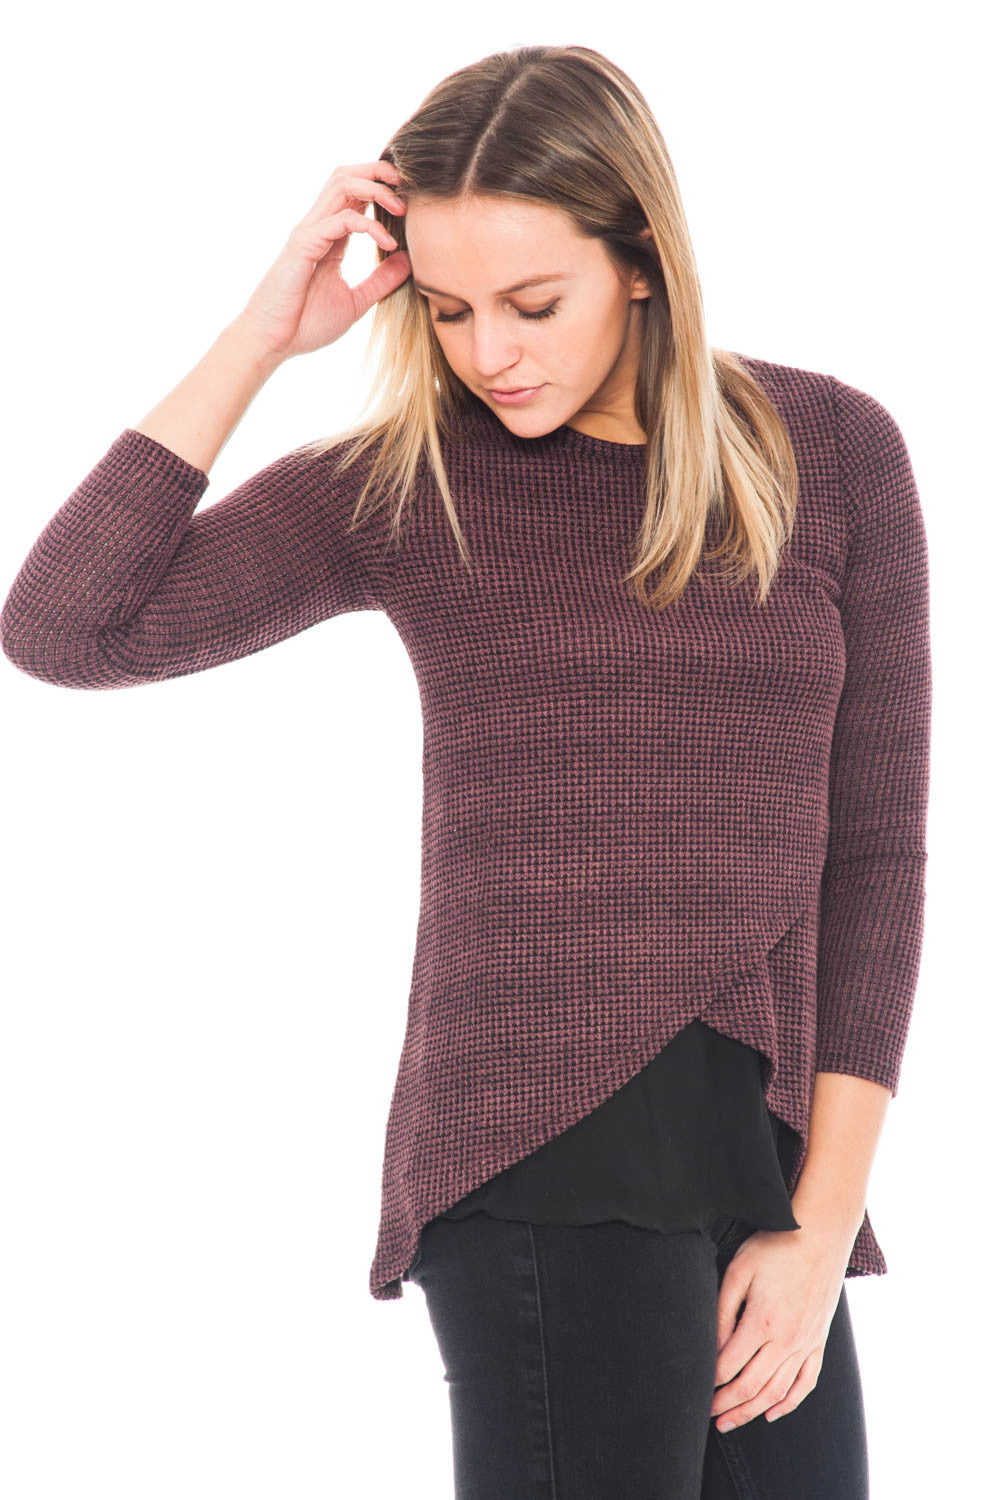 Shirt - 3/4 Sleeve Waffle Knit with an Overlap Front